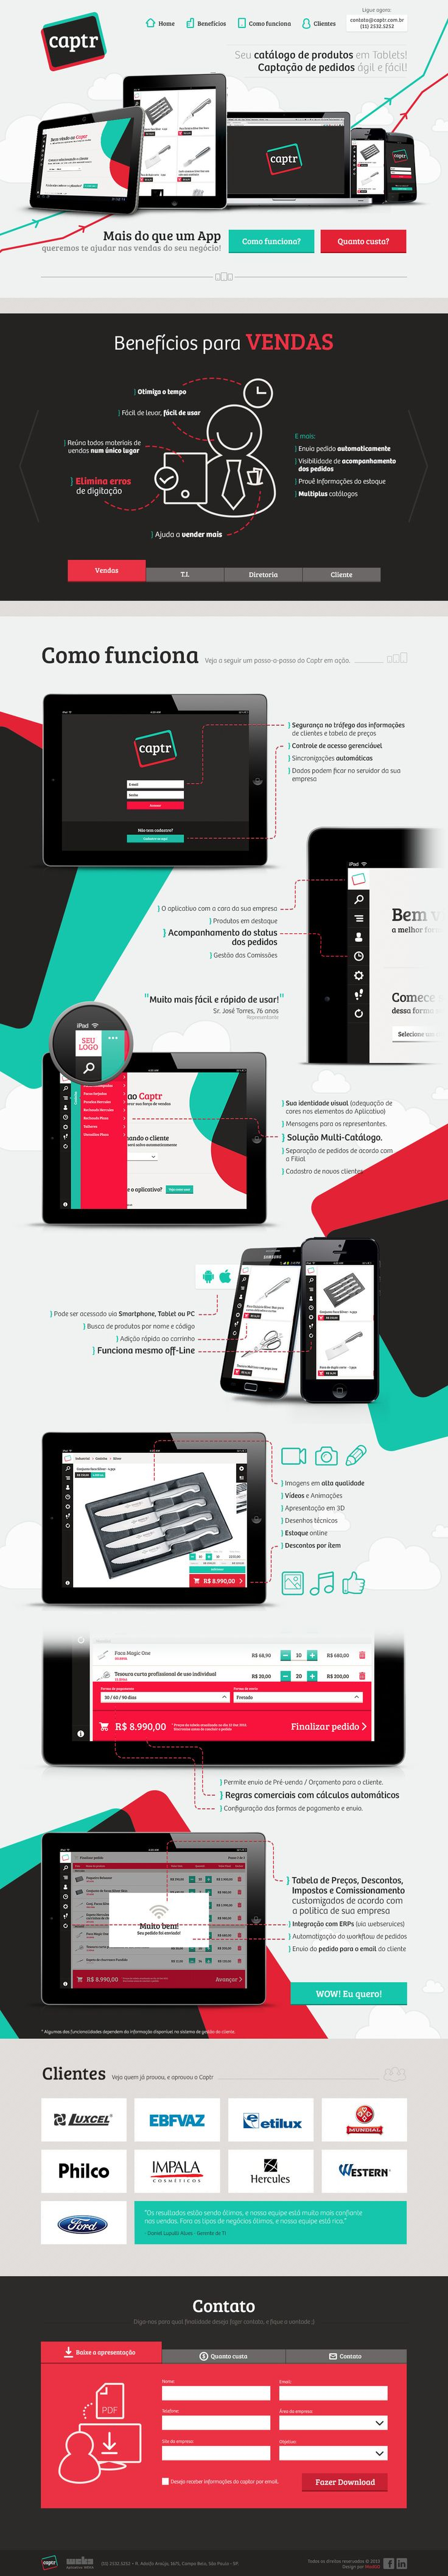 Flat design in the one pager for new startup Captr - a new e-commerce platform designed for tablets.